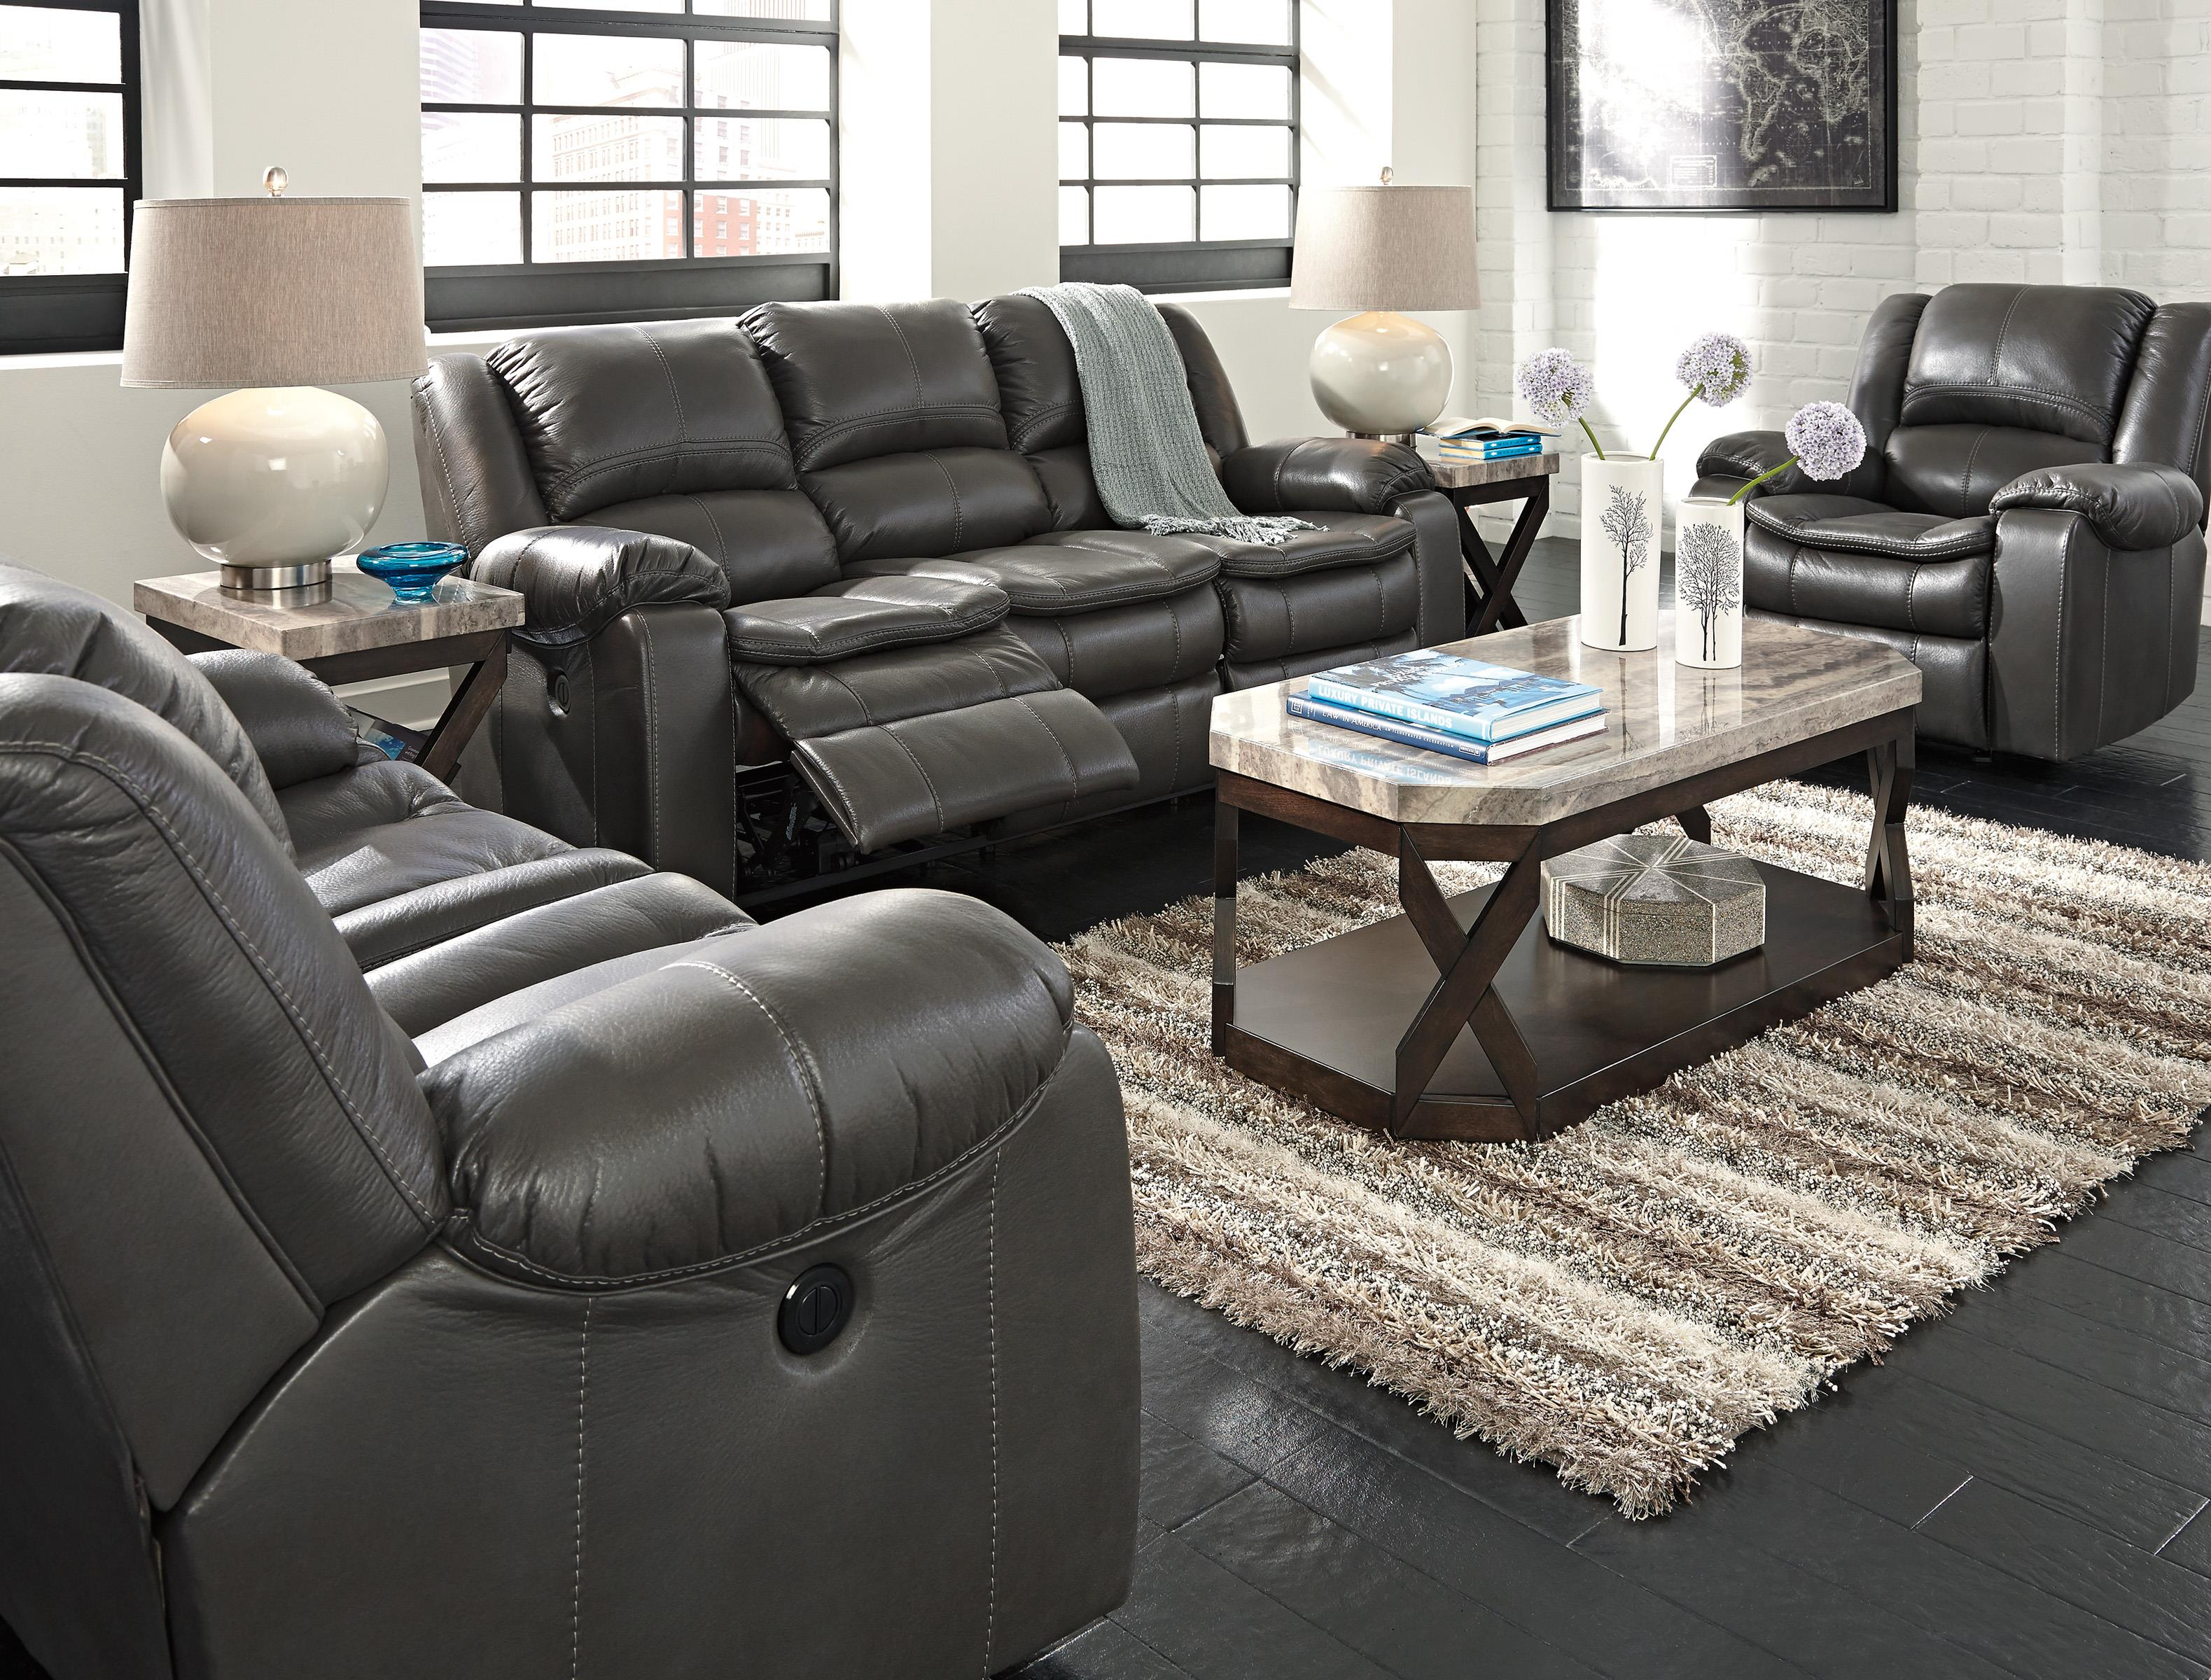 Signature Design by Ashley Long Knight Reclining Living Room Group - Item Number: 88906 Living Room Group 3